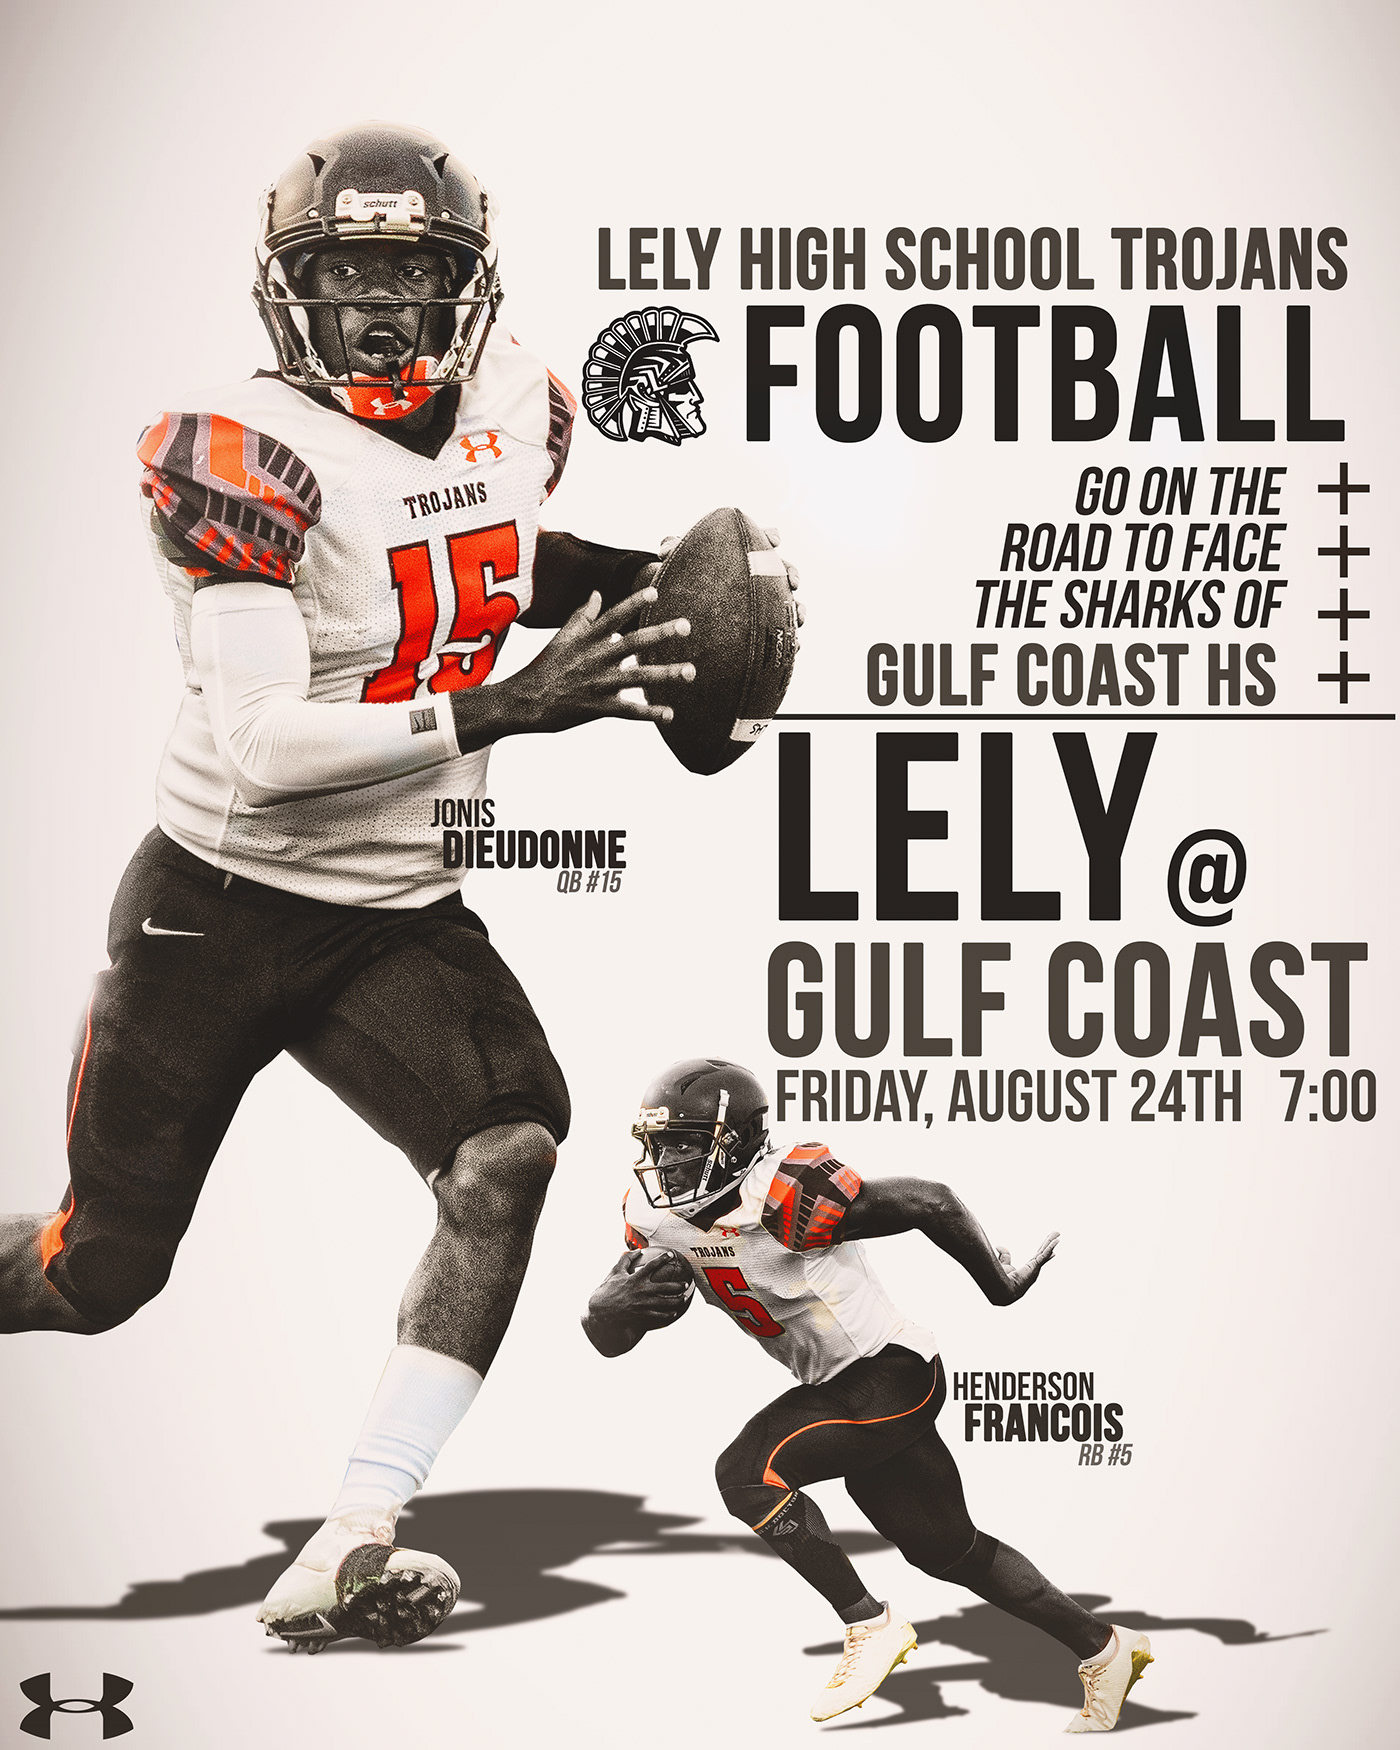 2017-2018 Lely High School Football on Behance